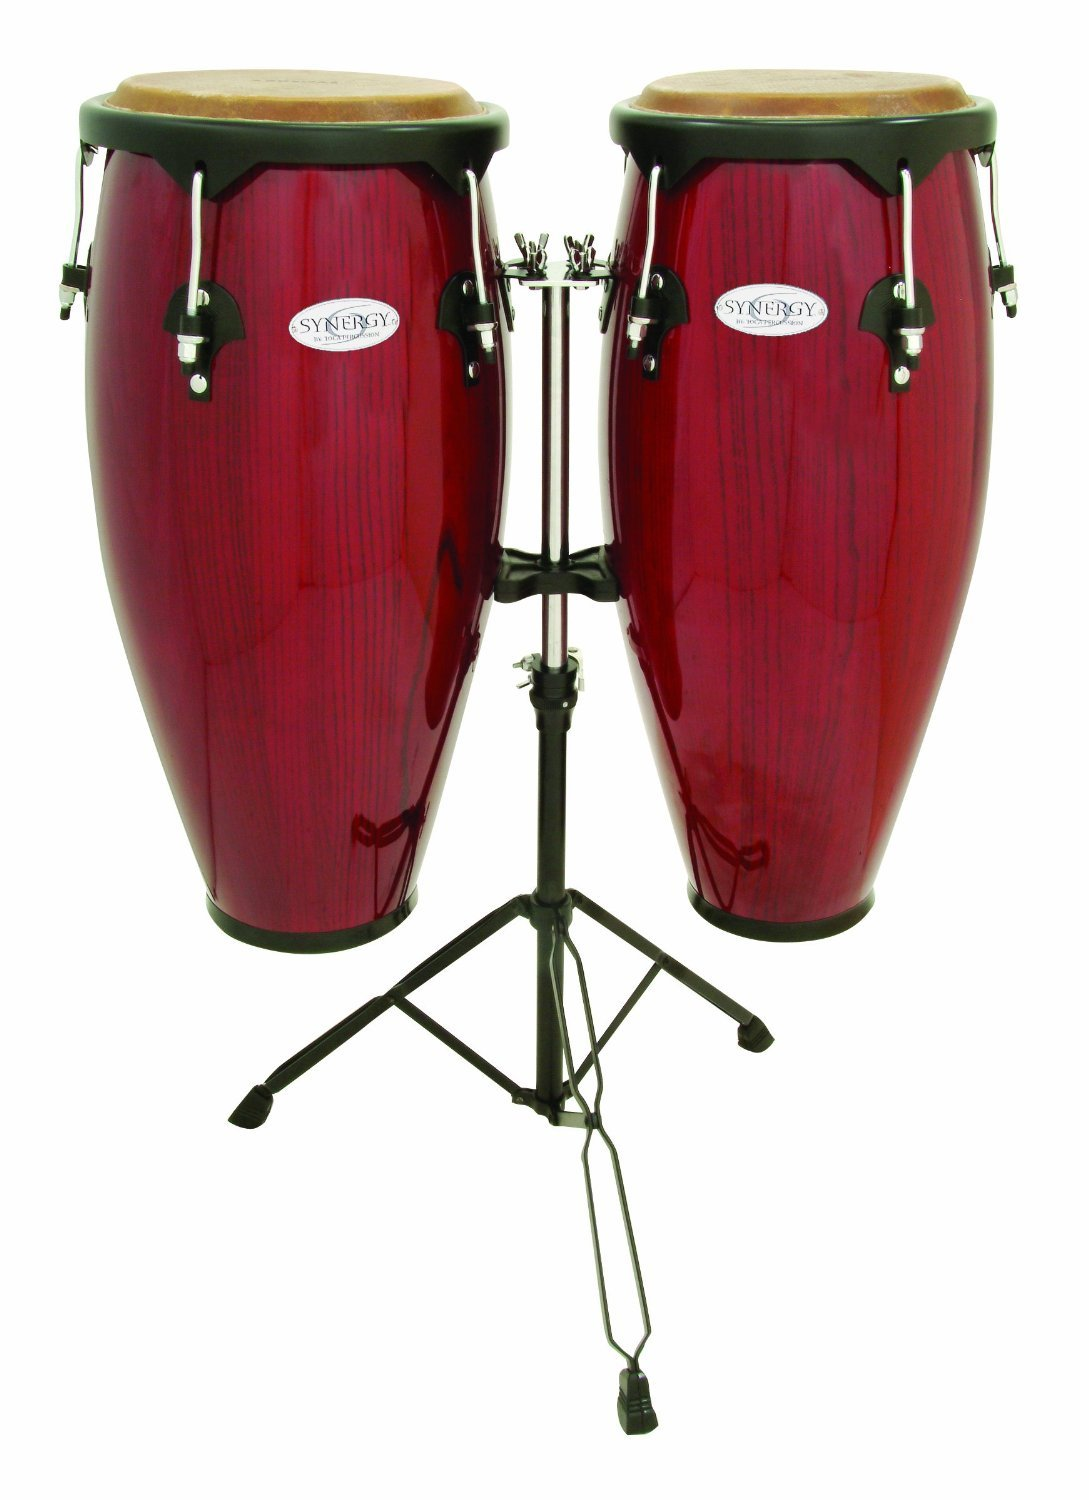 Toca Synergy Wood Conga Set w/ Double Stand - Red by Toca